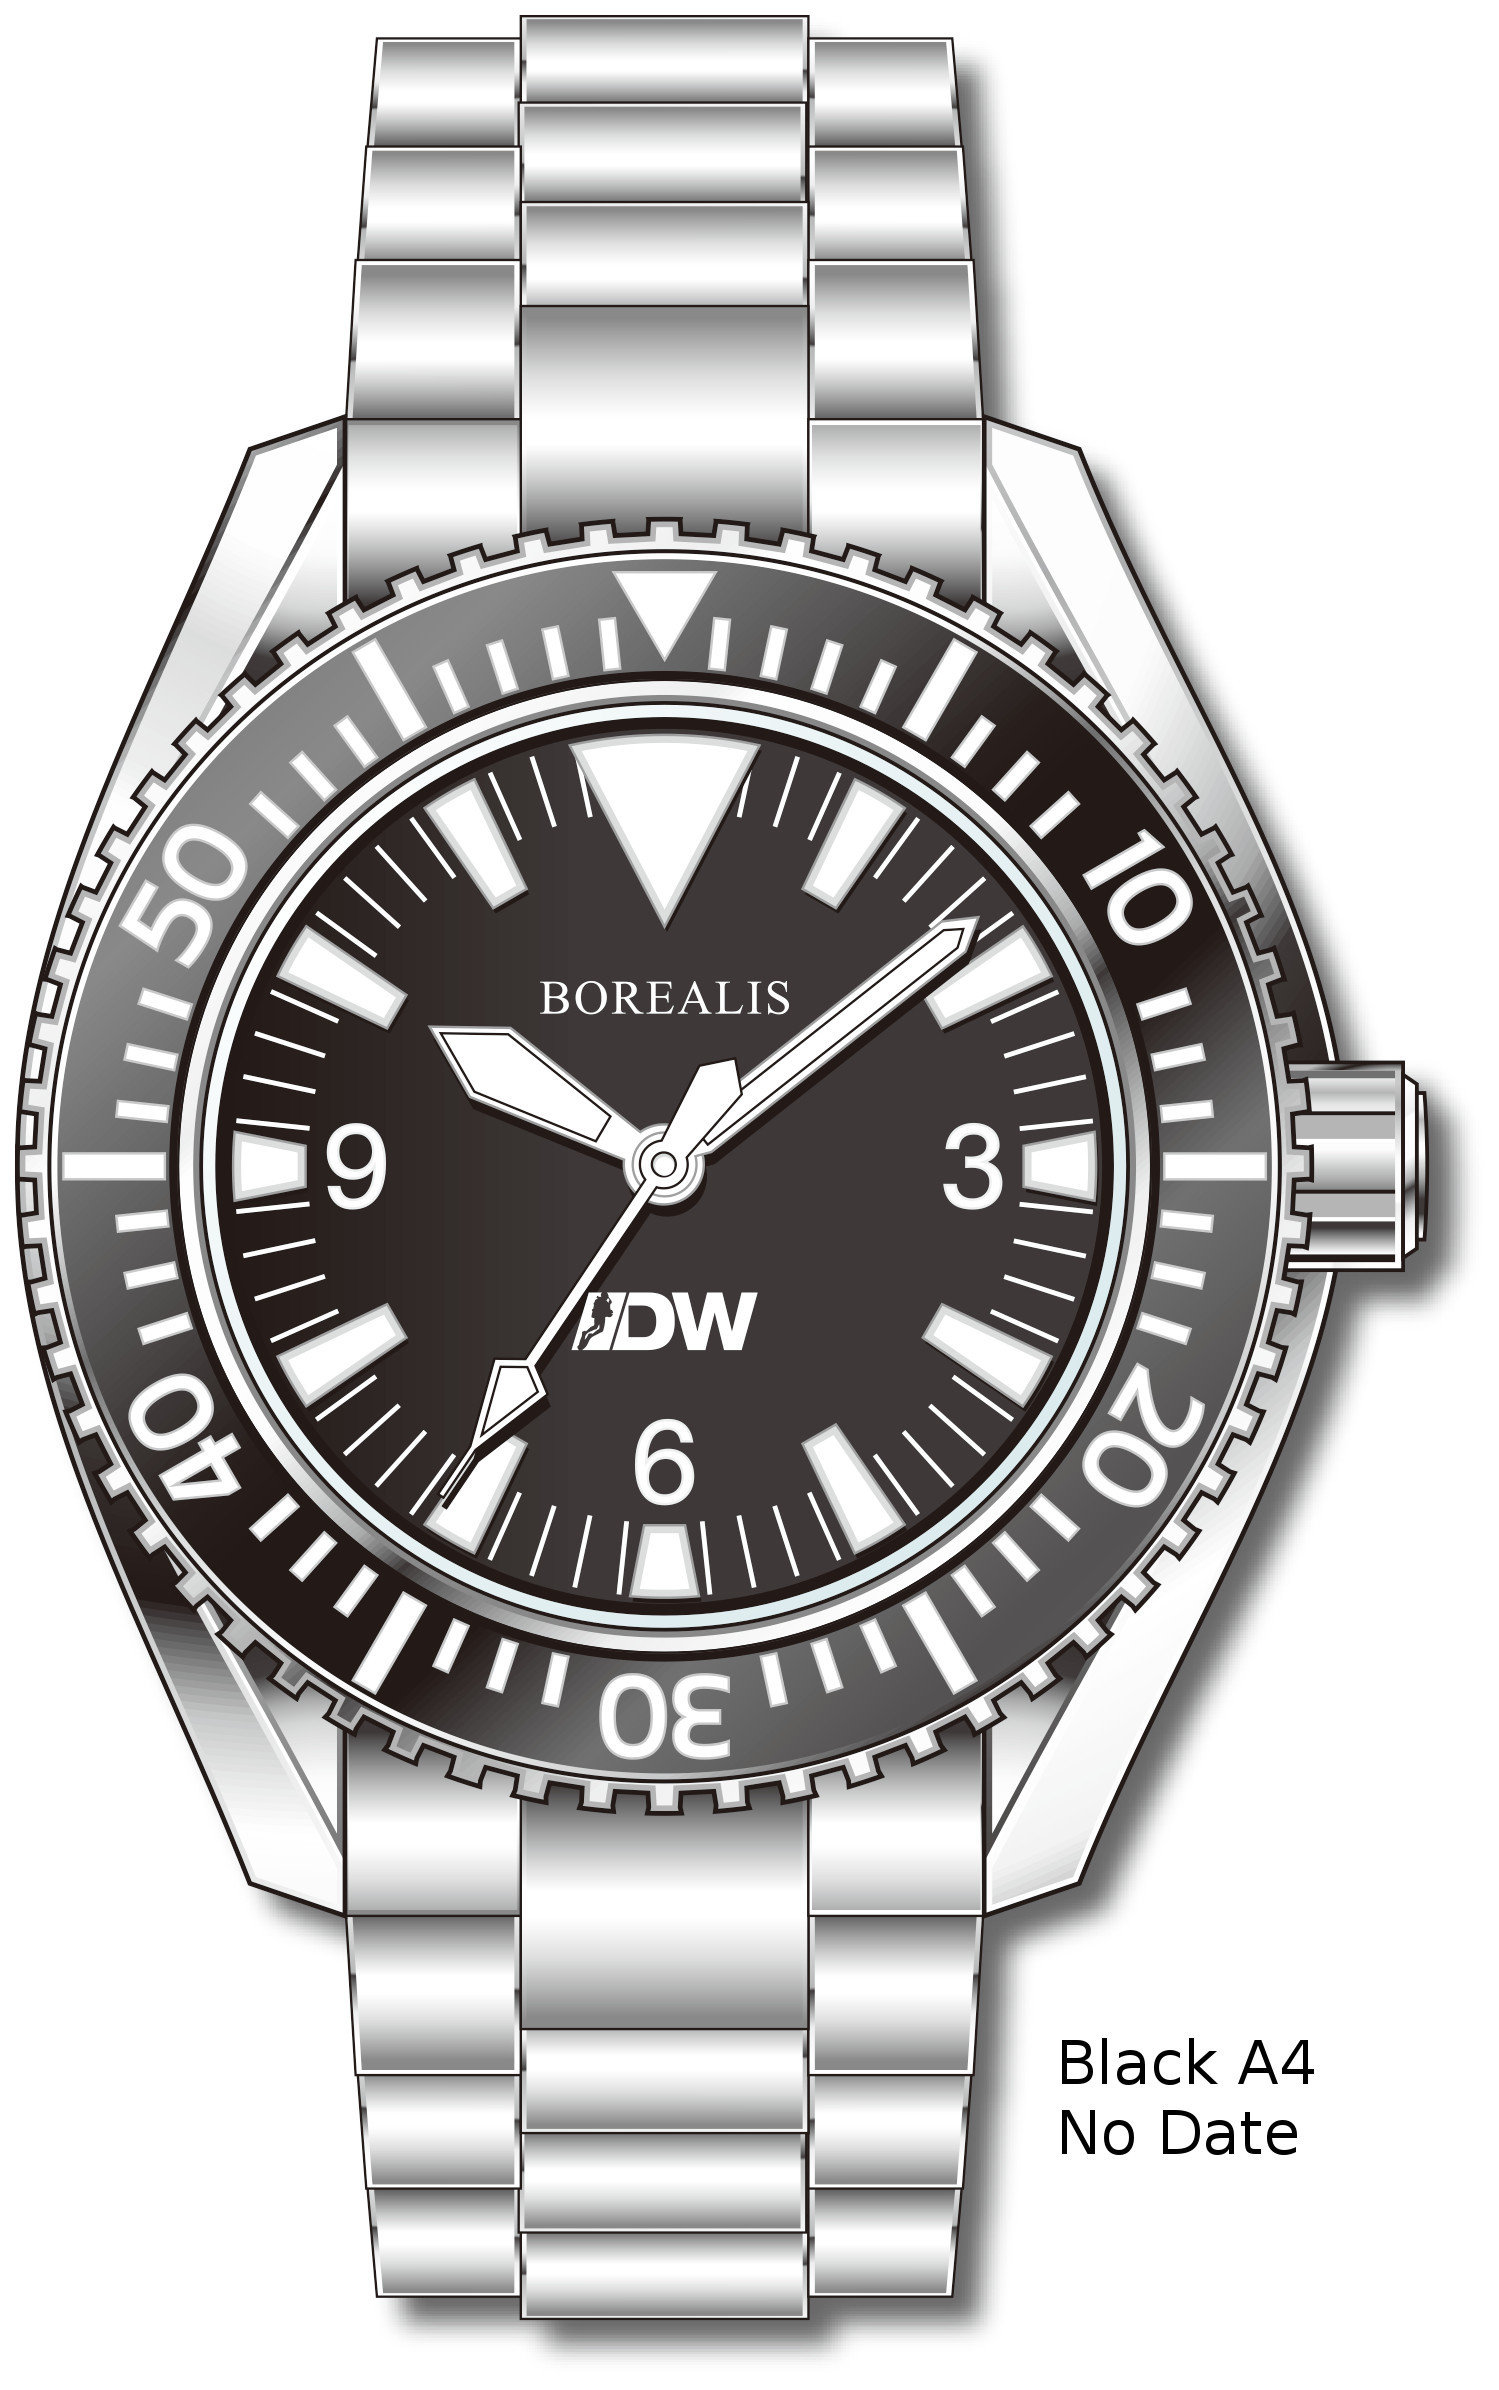 Pre-Order Borealis Estoril 300 for Diver's Watches Facebook Group Black Dial Big Triangle No Date Black A4 No Date